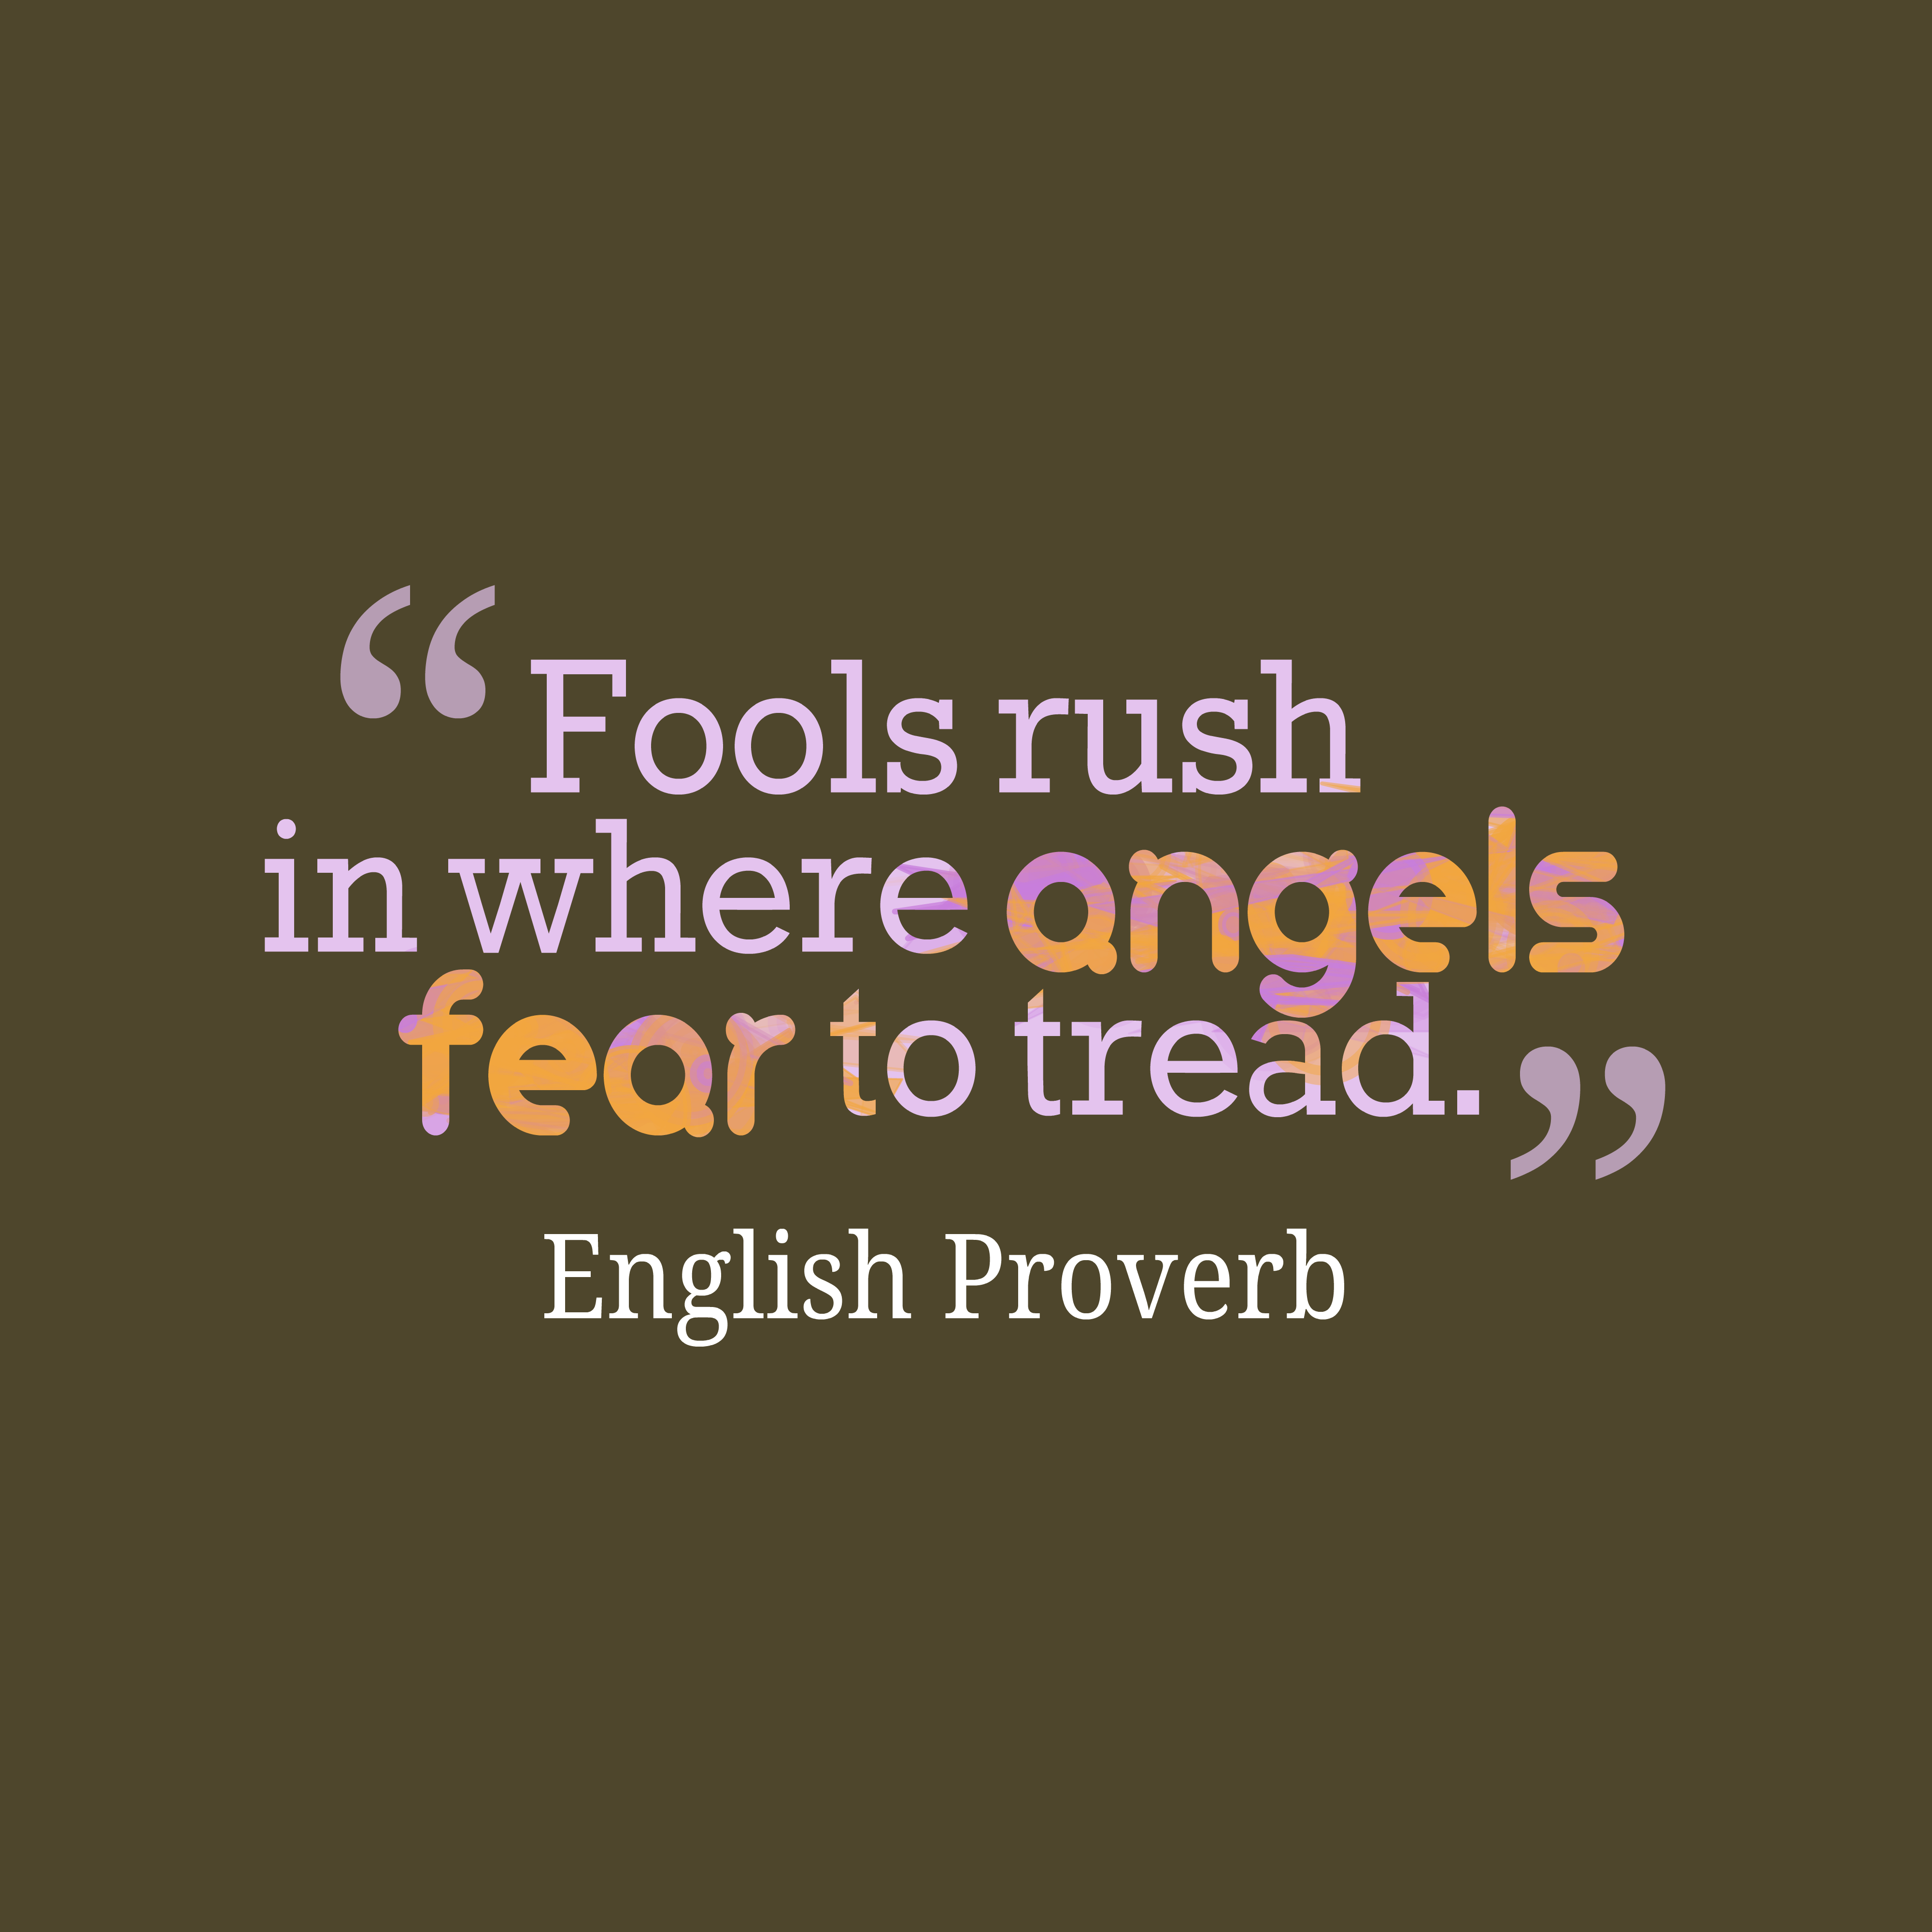 Quotes image of Fools rush in where angels fear to tread.